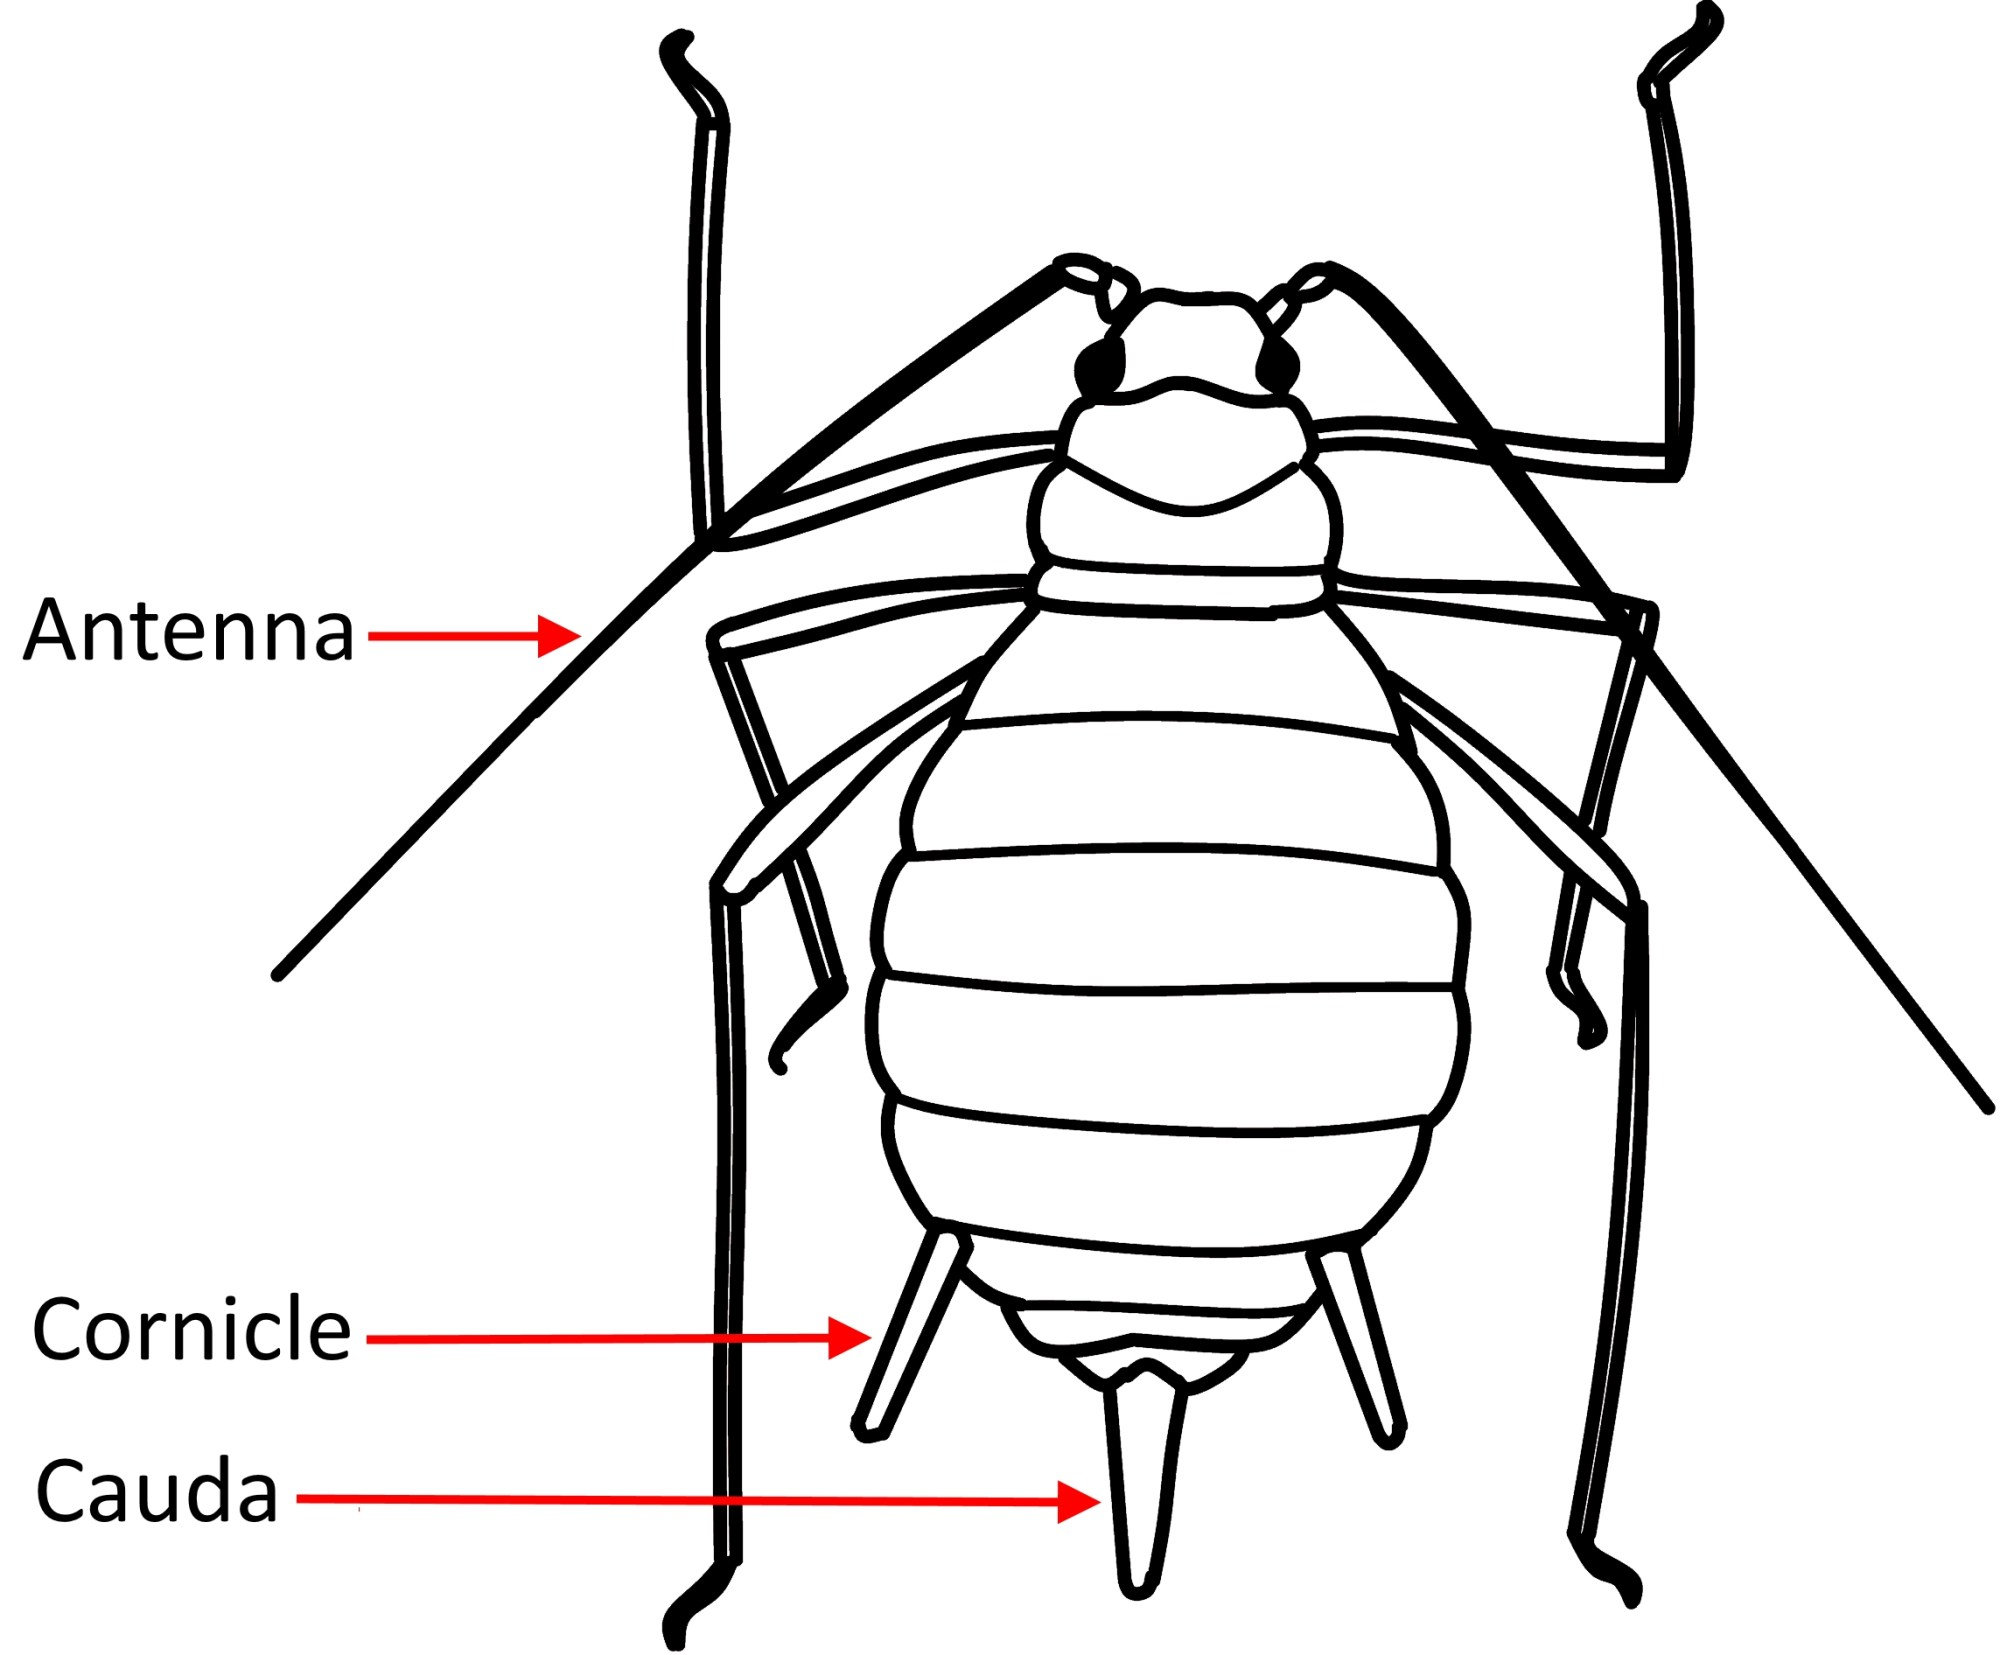 hight resolution of aphid diagram wiring diagram librariesaphid greenhouse ipmkey aphid anatomy diagram